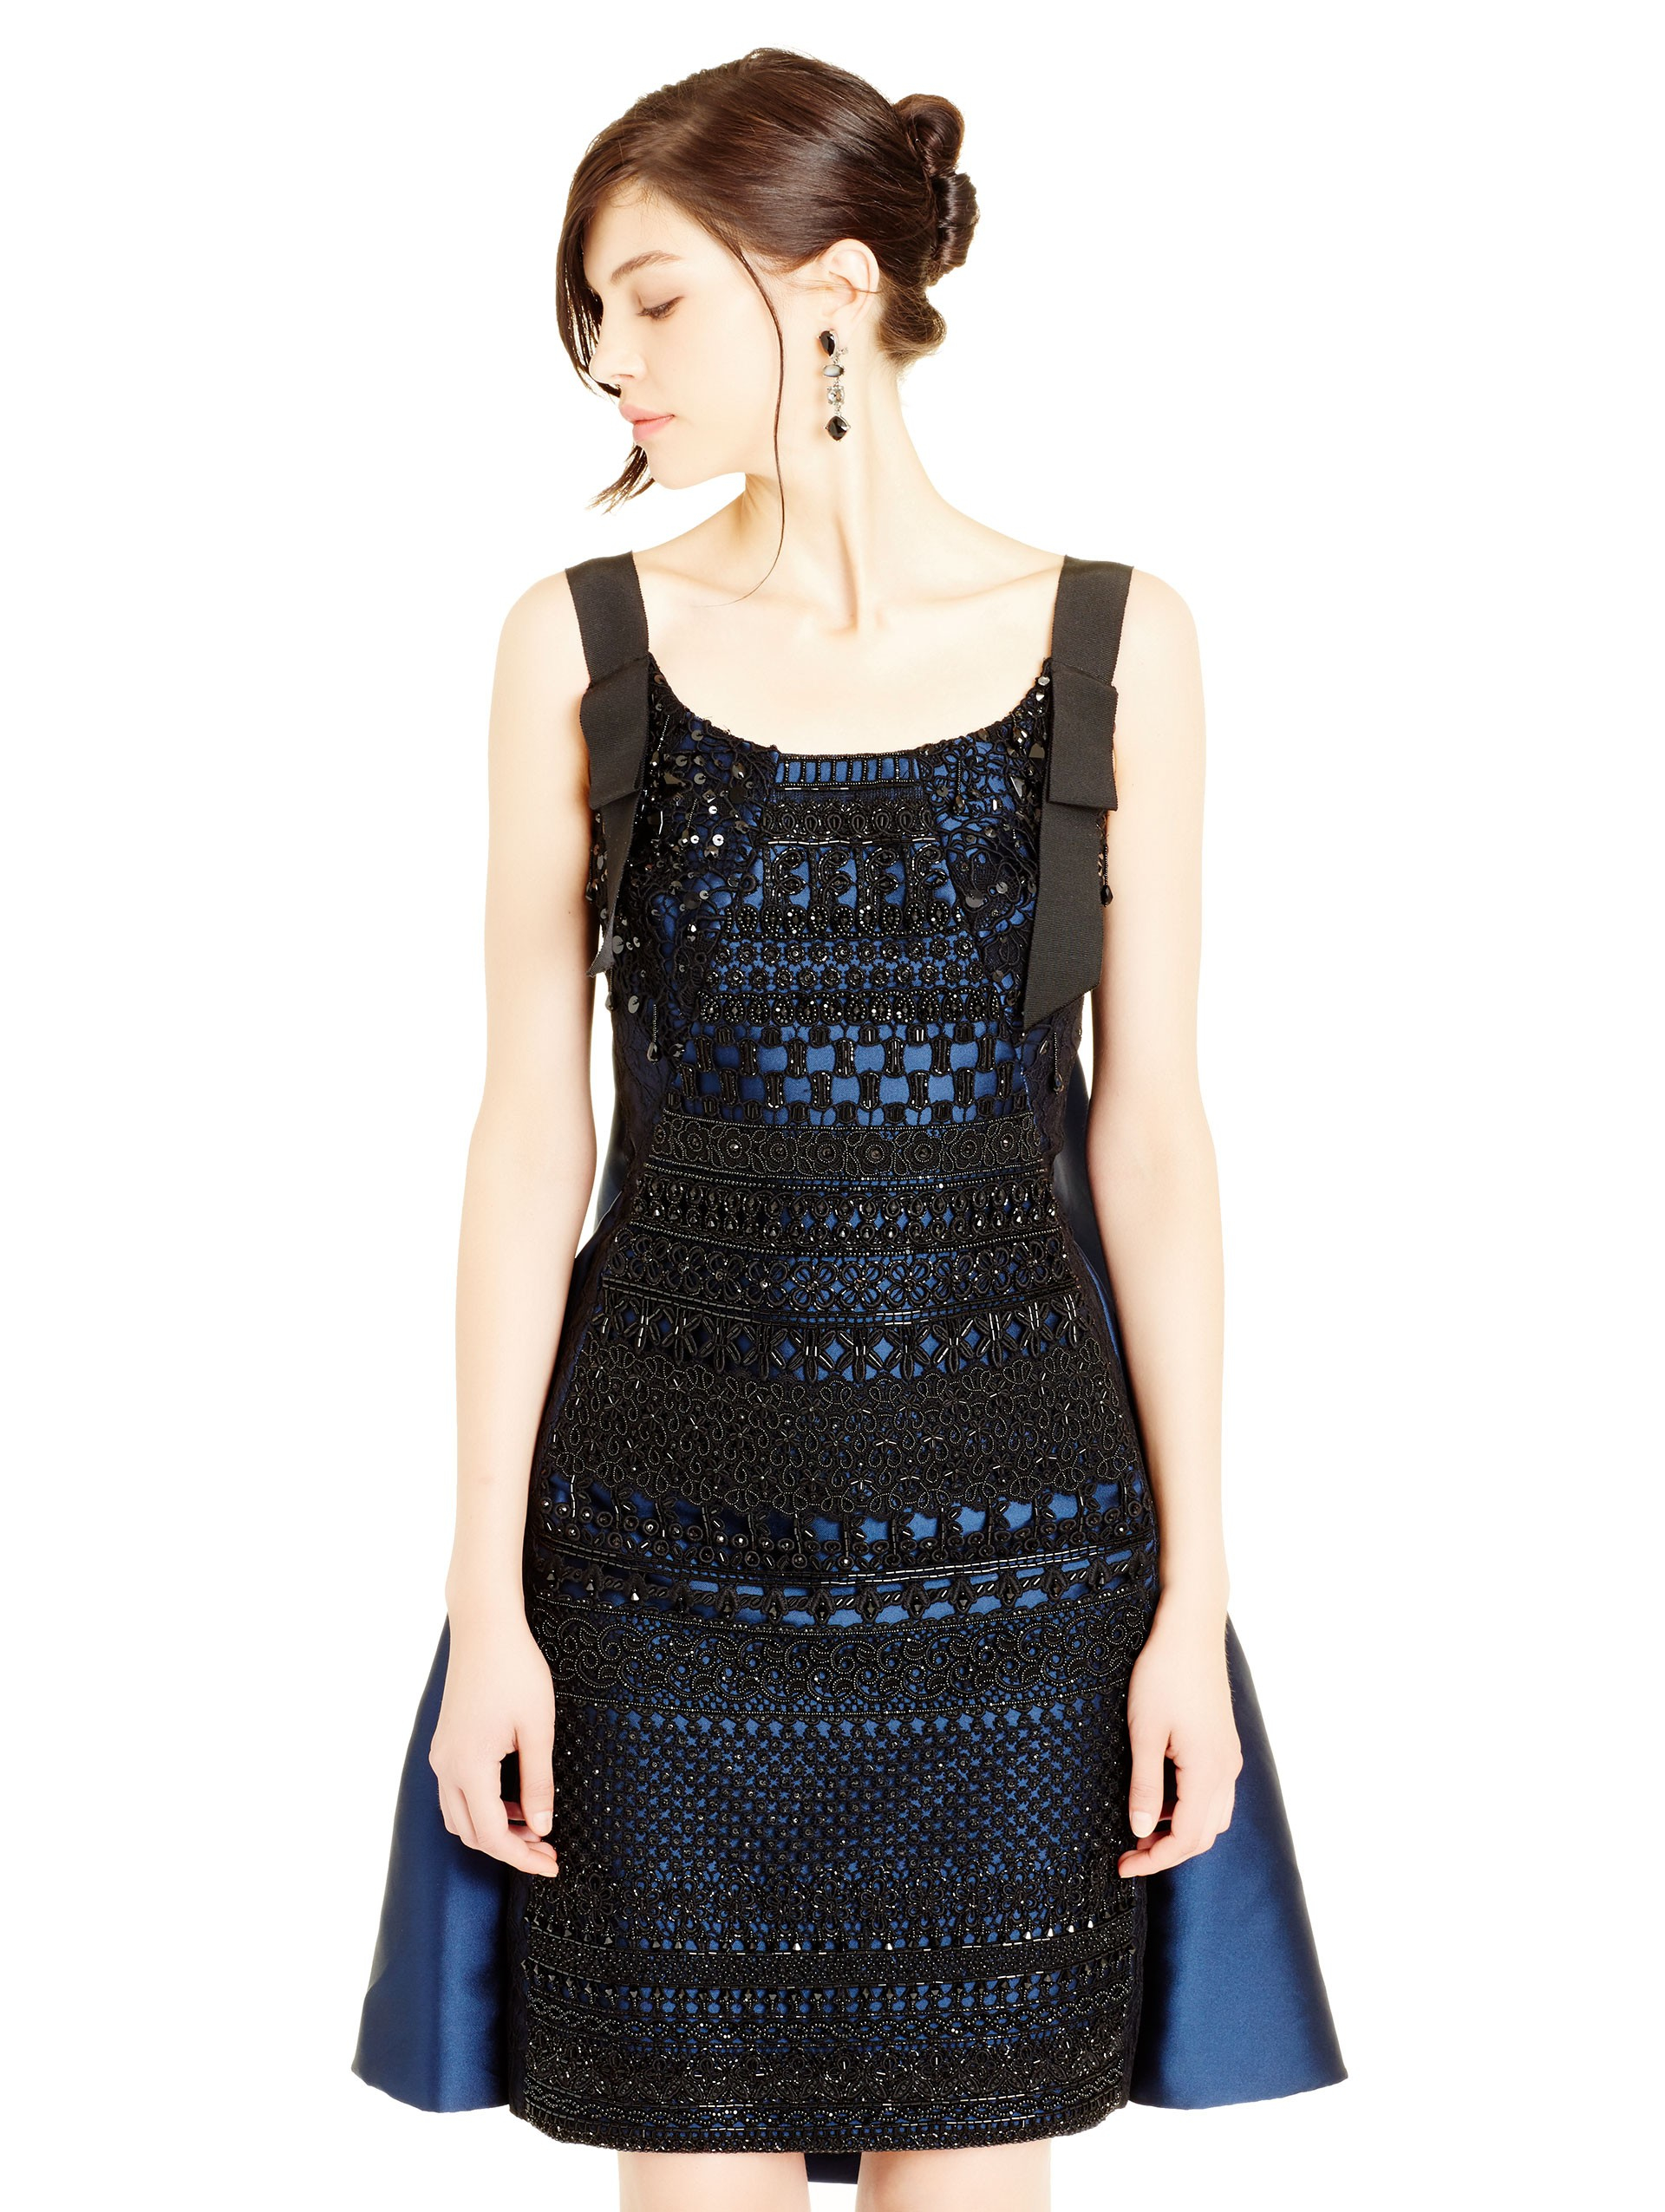 Nordstrom Lace Dress Photo Album - Watch Out, There\'s a Clothes About